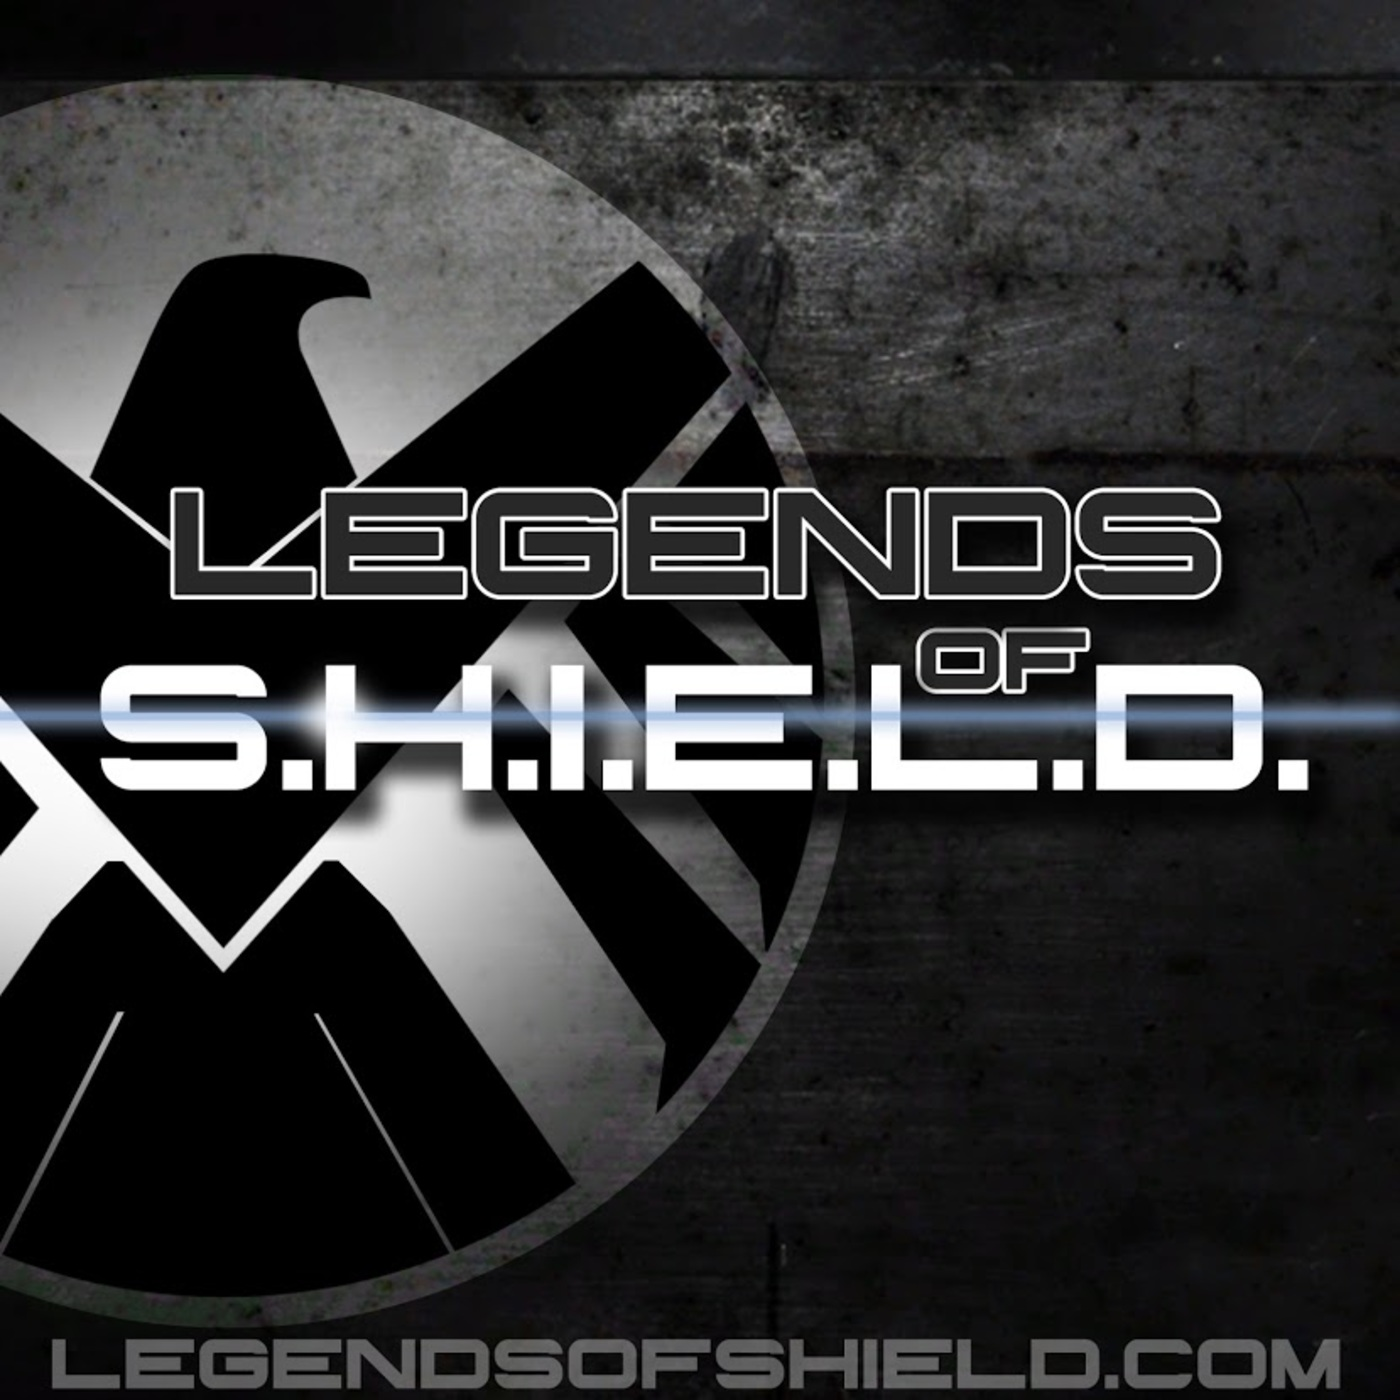 Legends of S.H.I.E.L.D.: An Unofficial Marvel Agents Of S.H.I.E.L.D. Fan Podcast